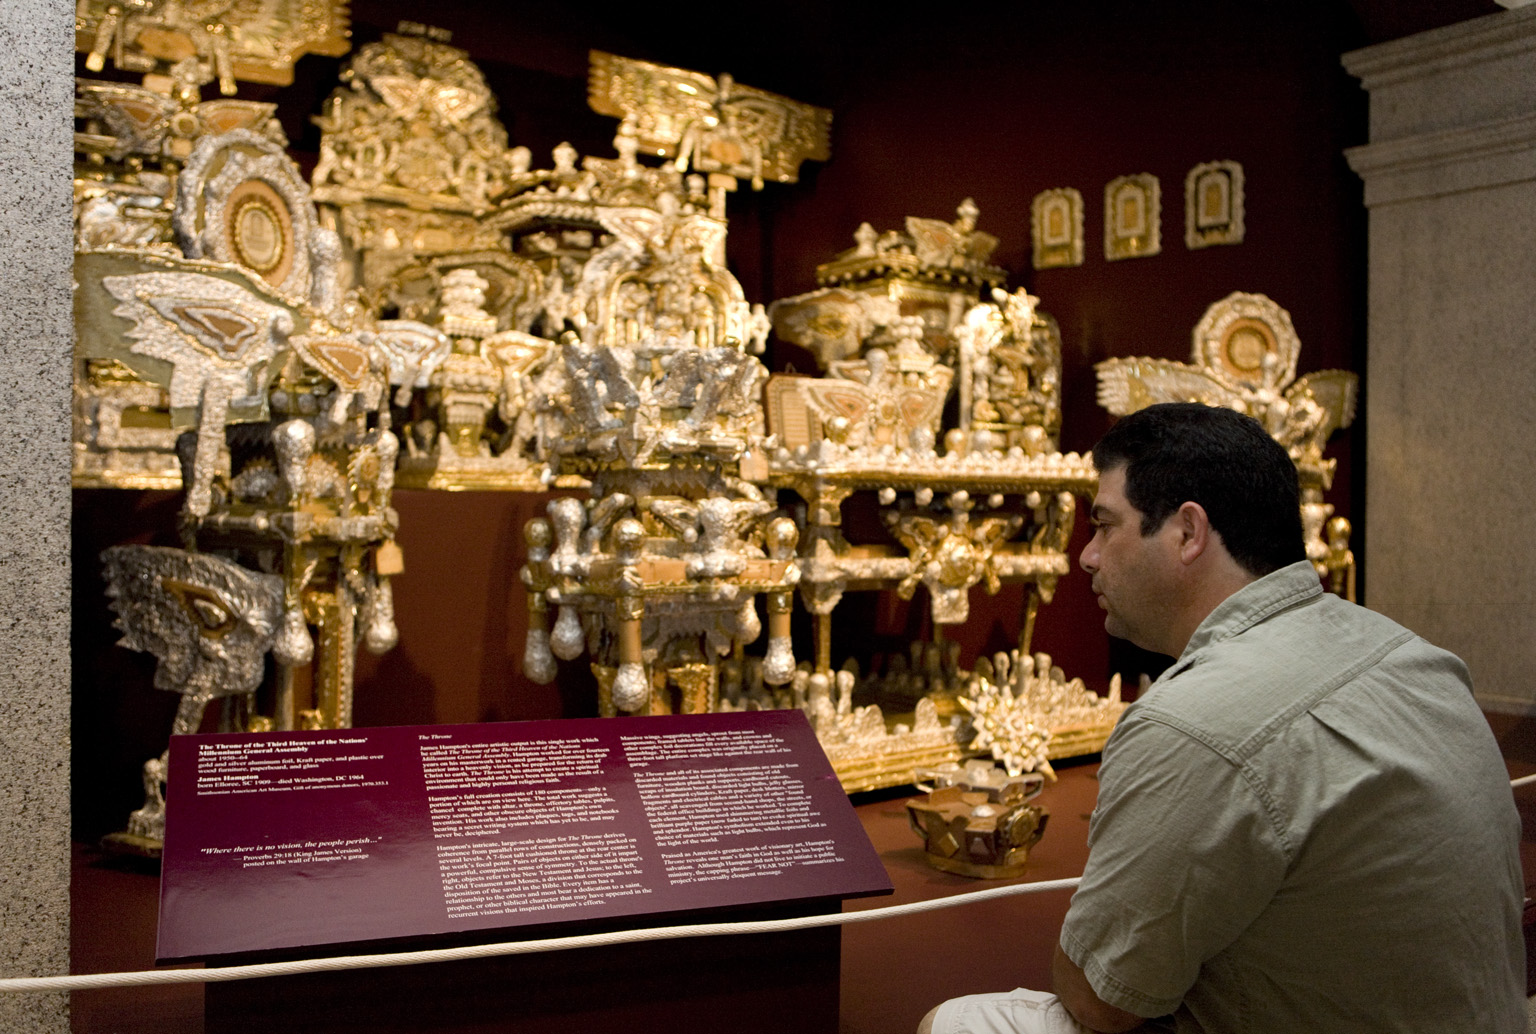 A man looks at an art piece of various items wrapped in foils.